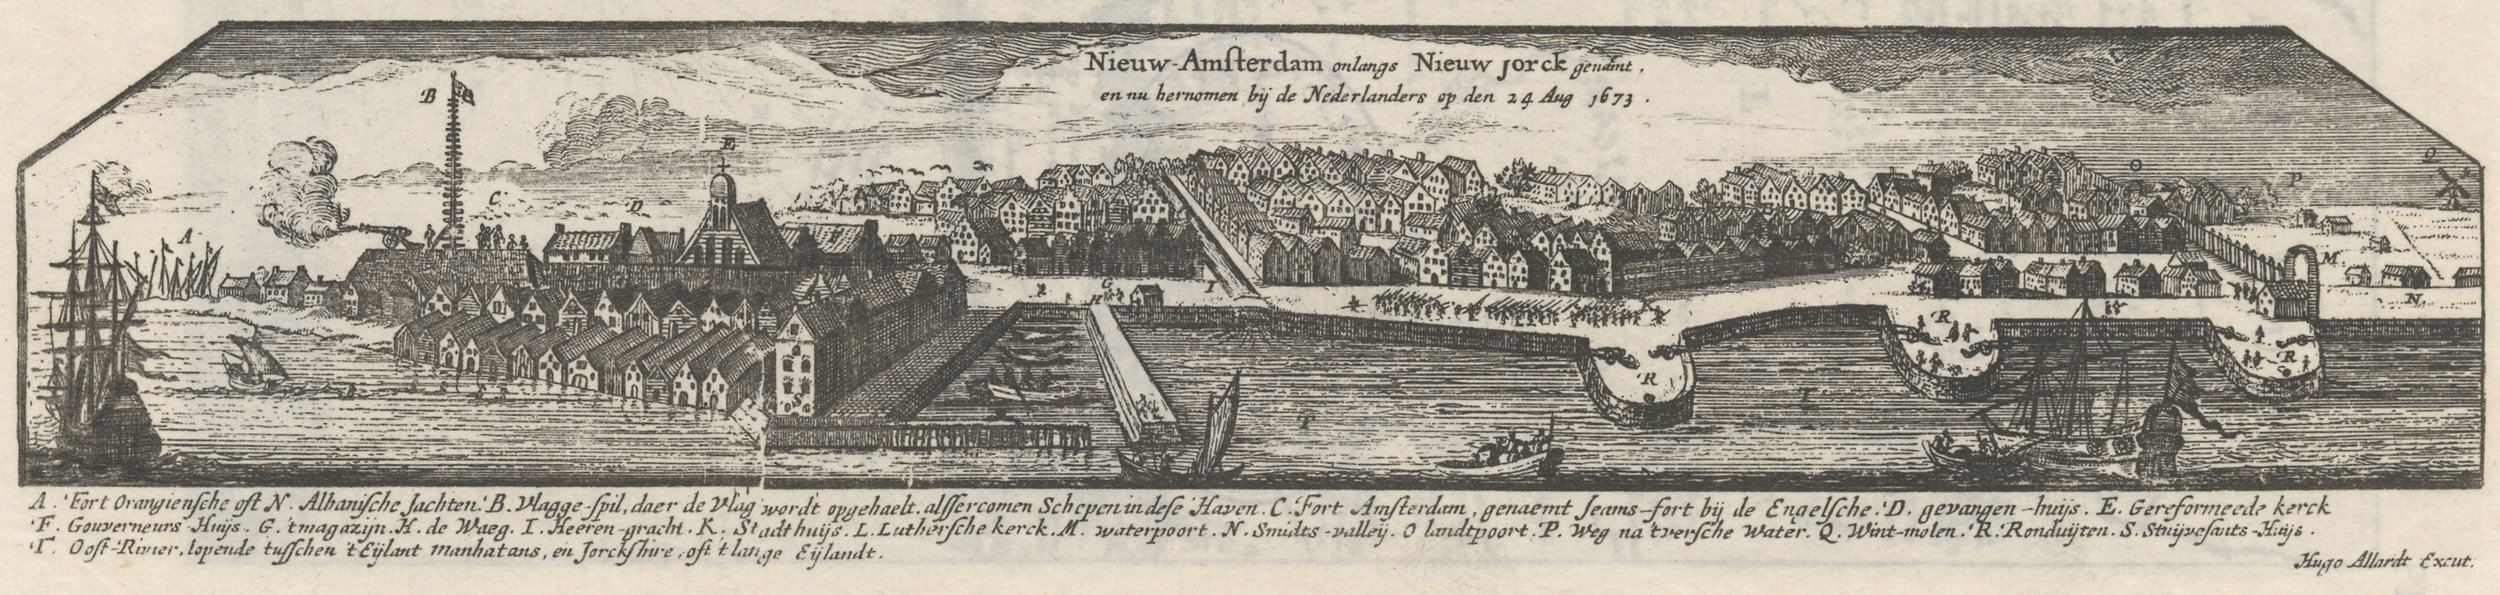 Copied from the Allard Map, a 1673 French survey of the New Netherlands, this illustration shows the Dutch recapturing New York. Stokes,  The Iconography of Manhattan Island , vol. I, pl. 8. NYC Municipal Library.